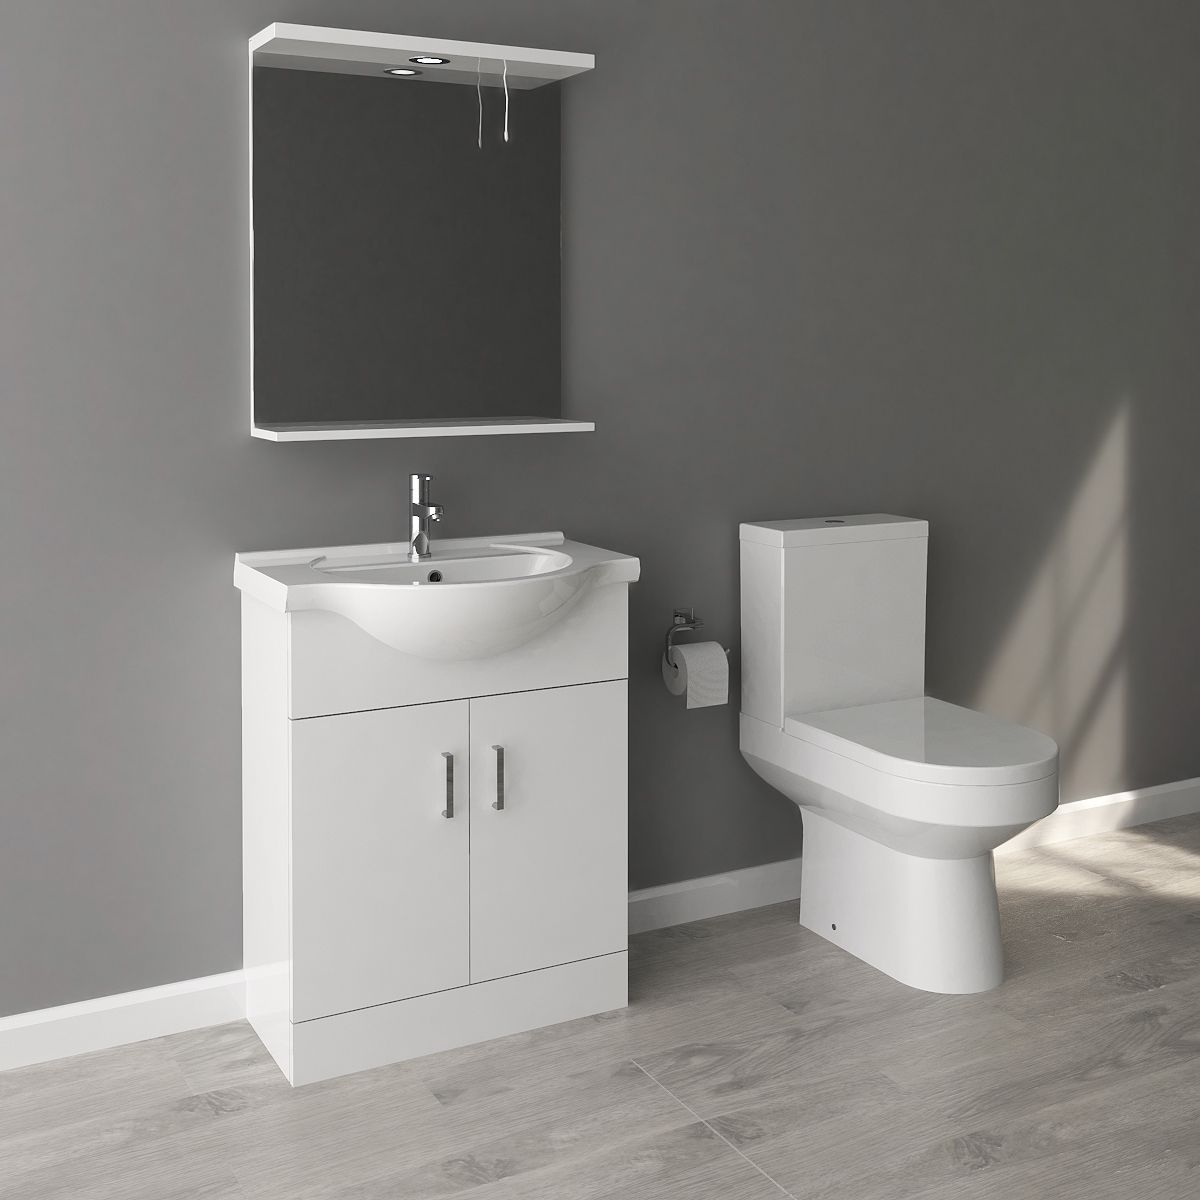 Nuie High Gloss White Vanity Unit and Toilet Set 650mm